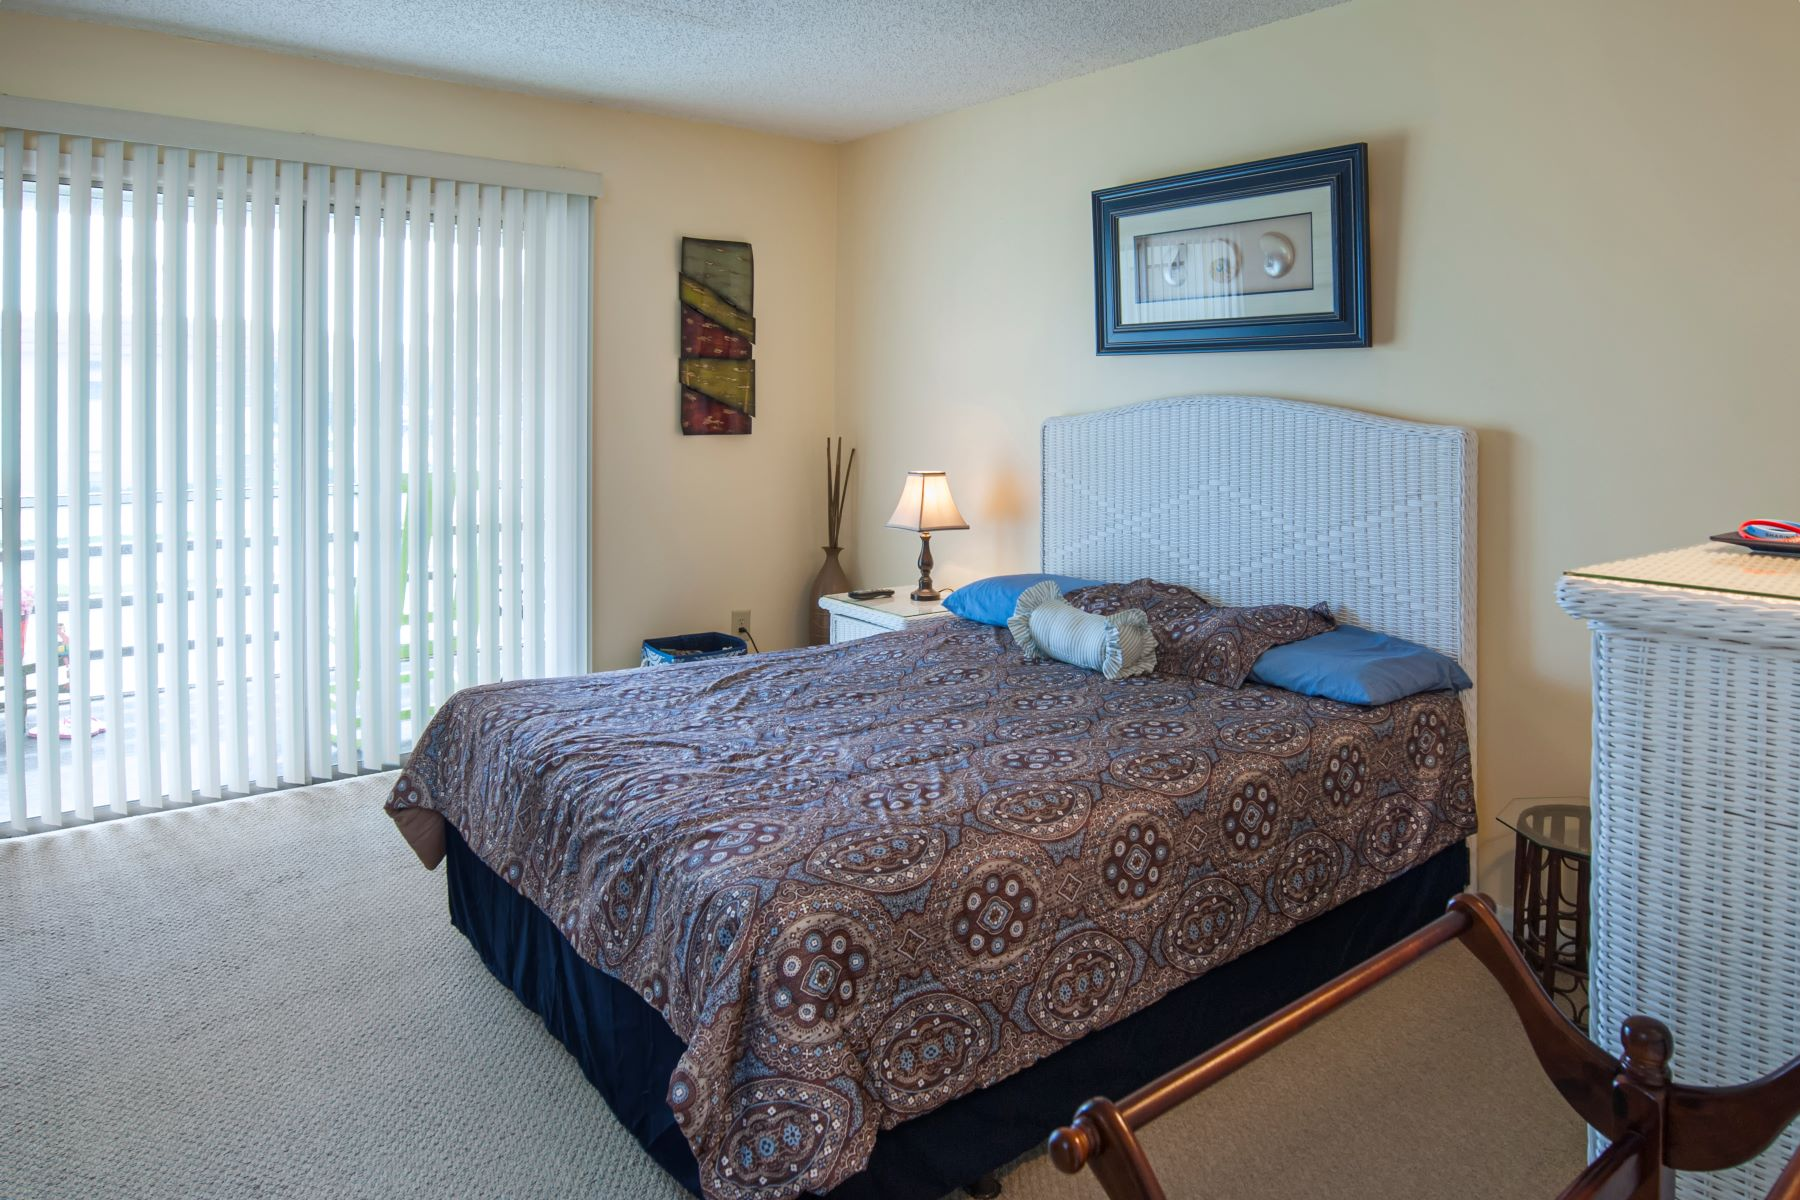 Additional photo for property listing at Cute One Bedroom Condo with Golf Course Views 76 Royal Oak Drive 204 Vero Beach, Florida 32962 United States